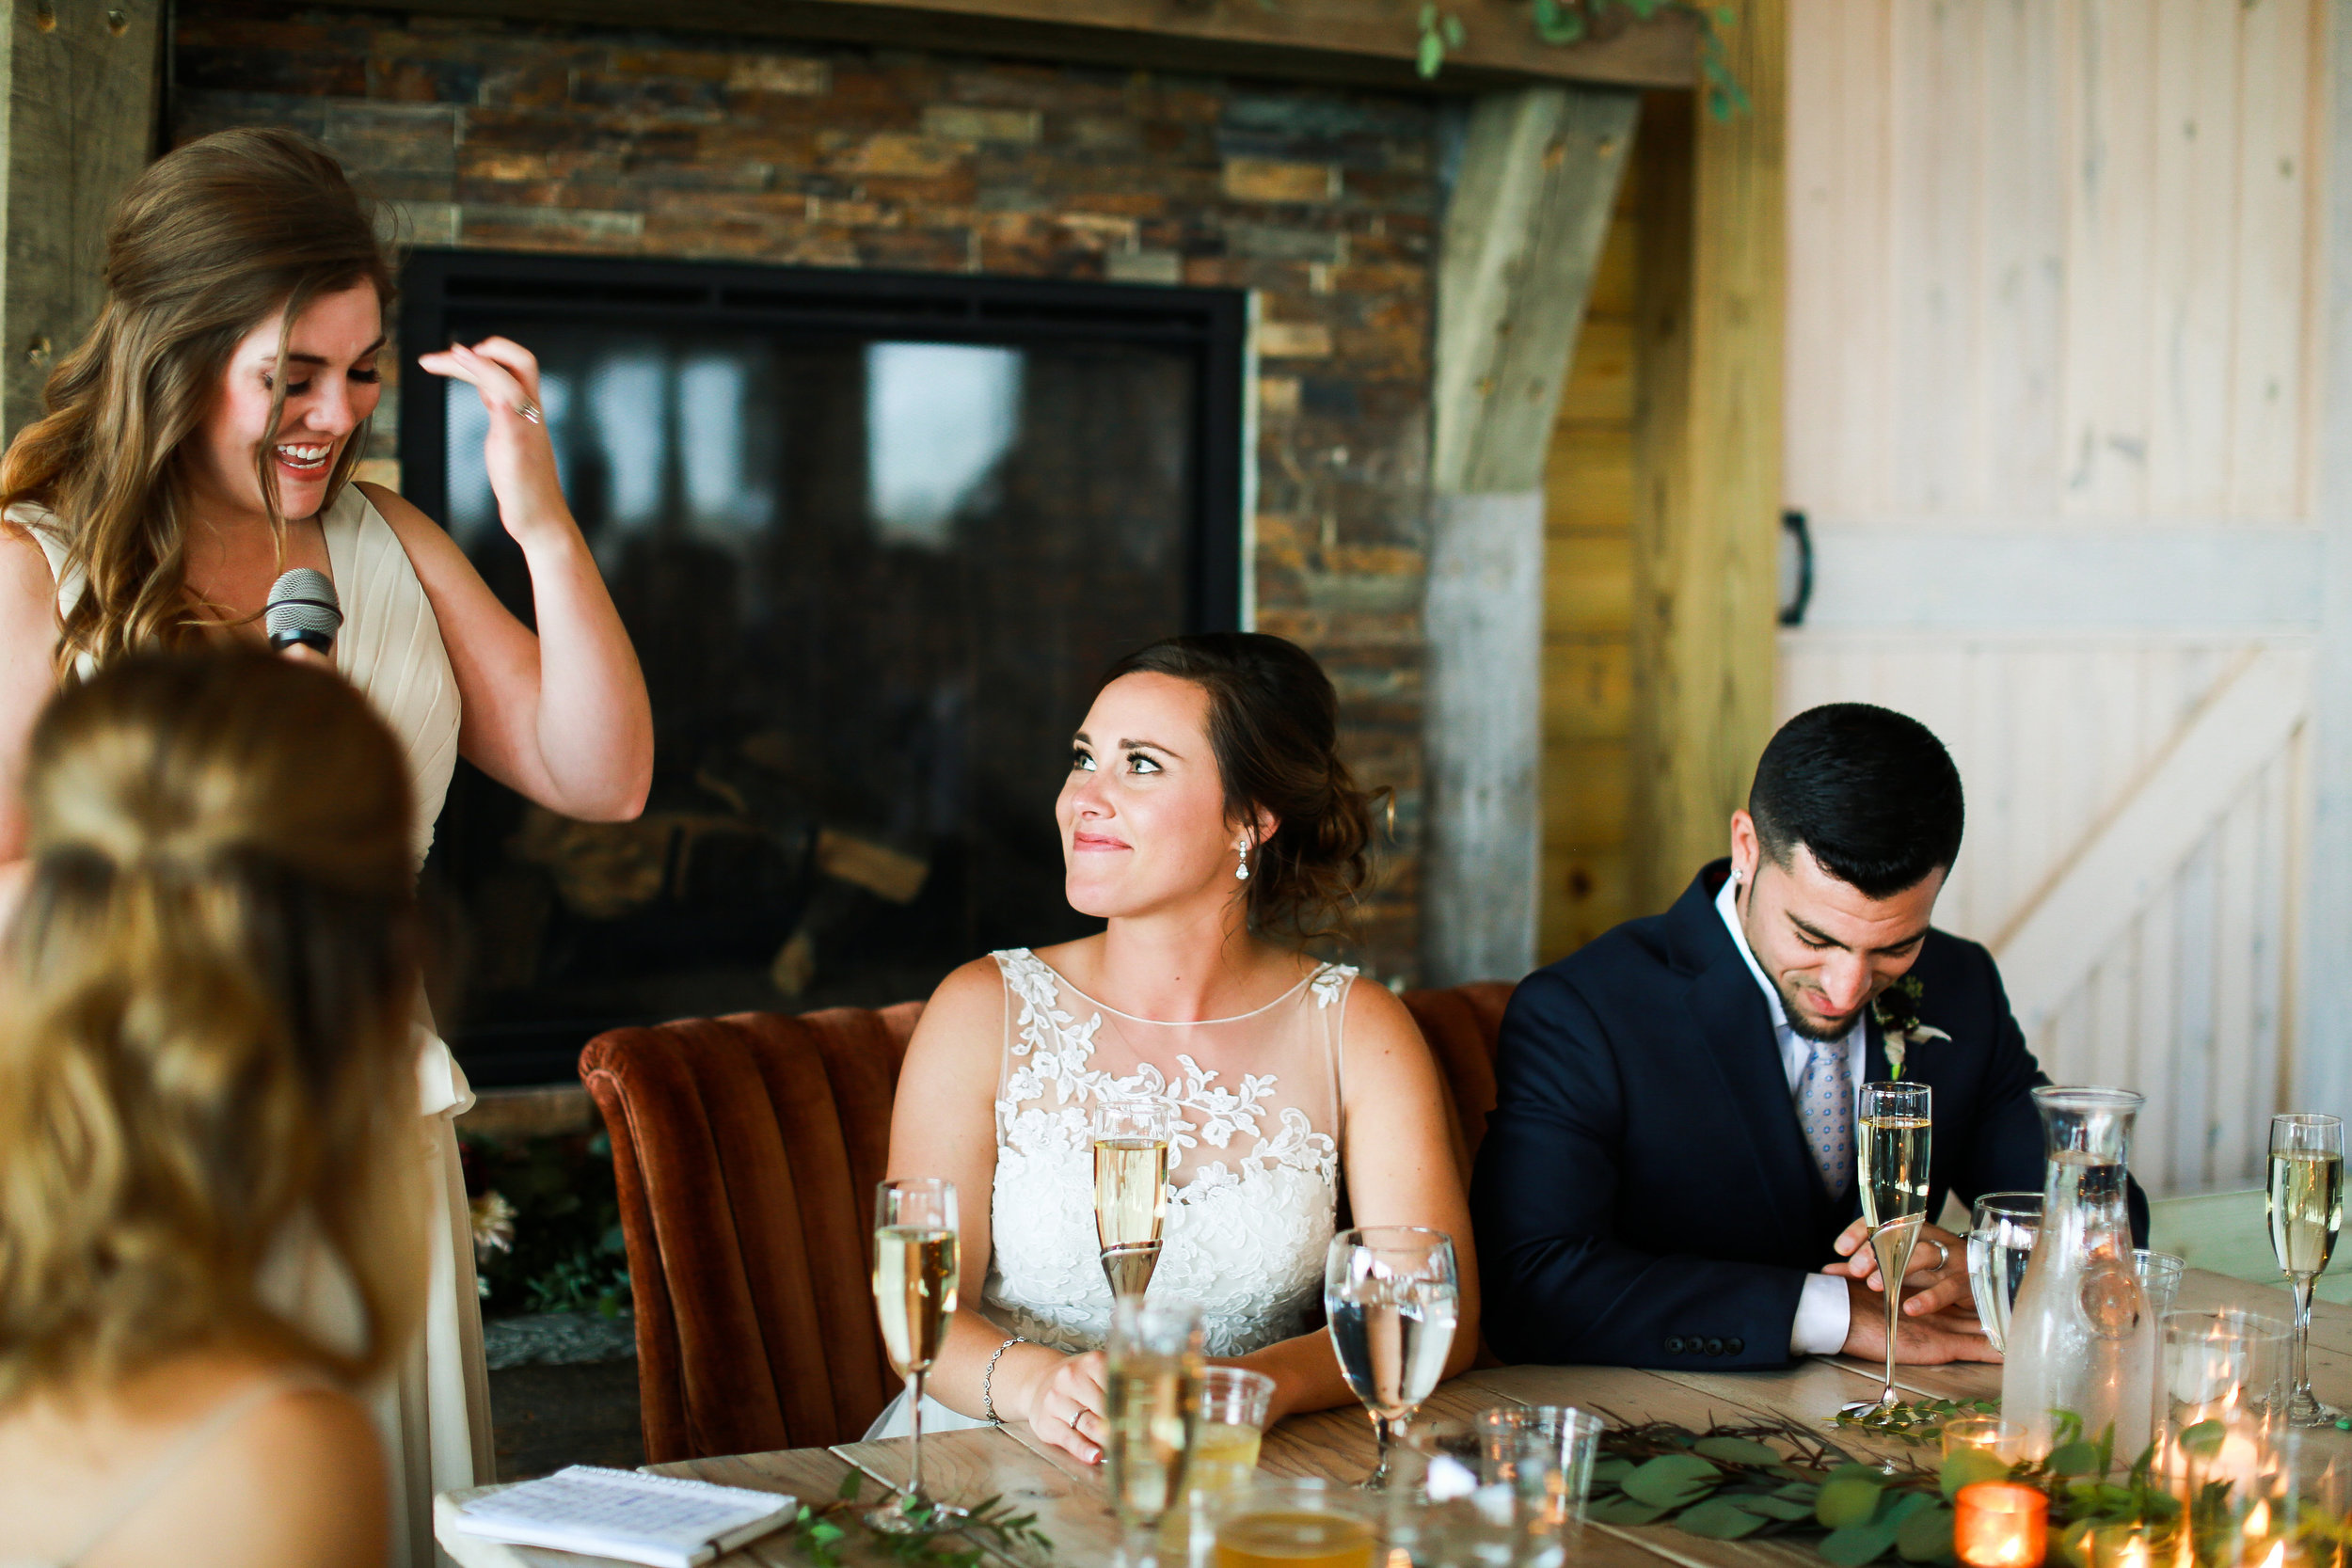 Jenna Kevin Wedding   Sixpence Events day of coordinating   Hannah Schmitt Photography   Legacy Hill Farm   toasts